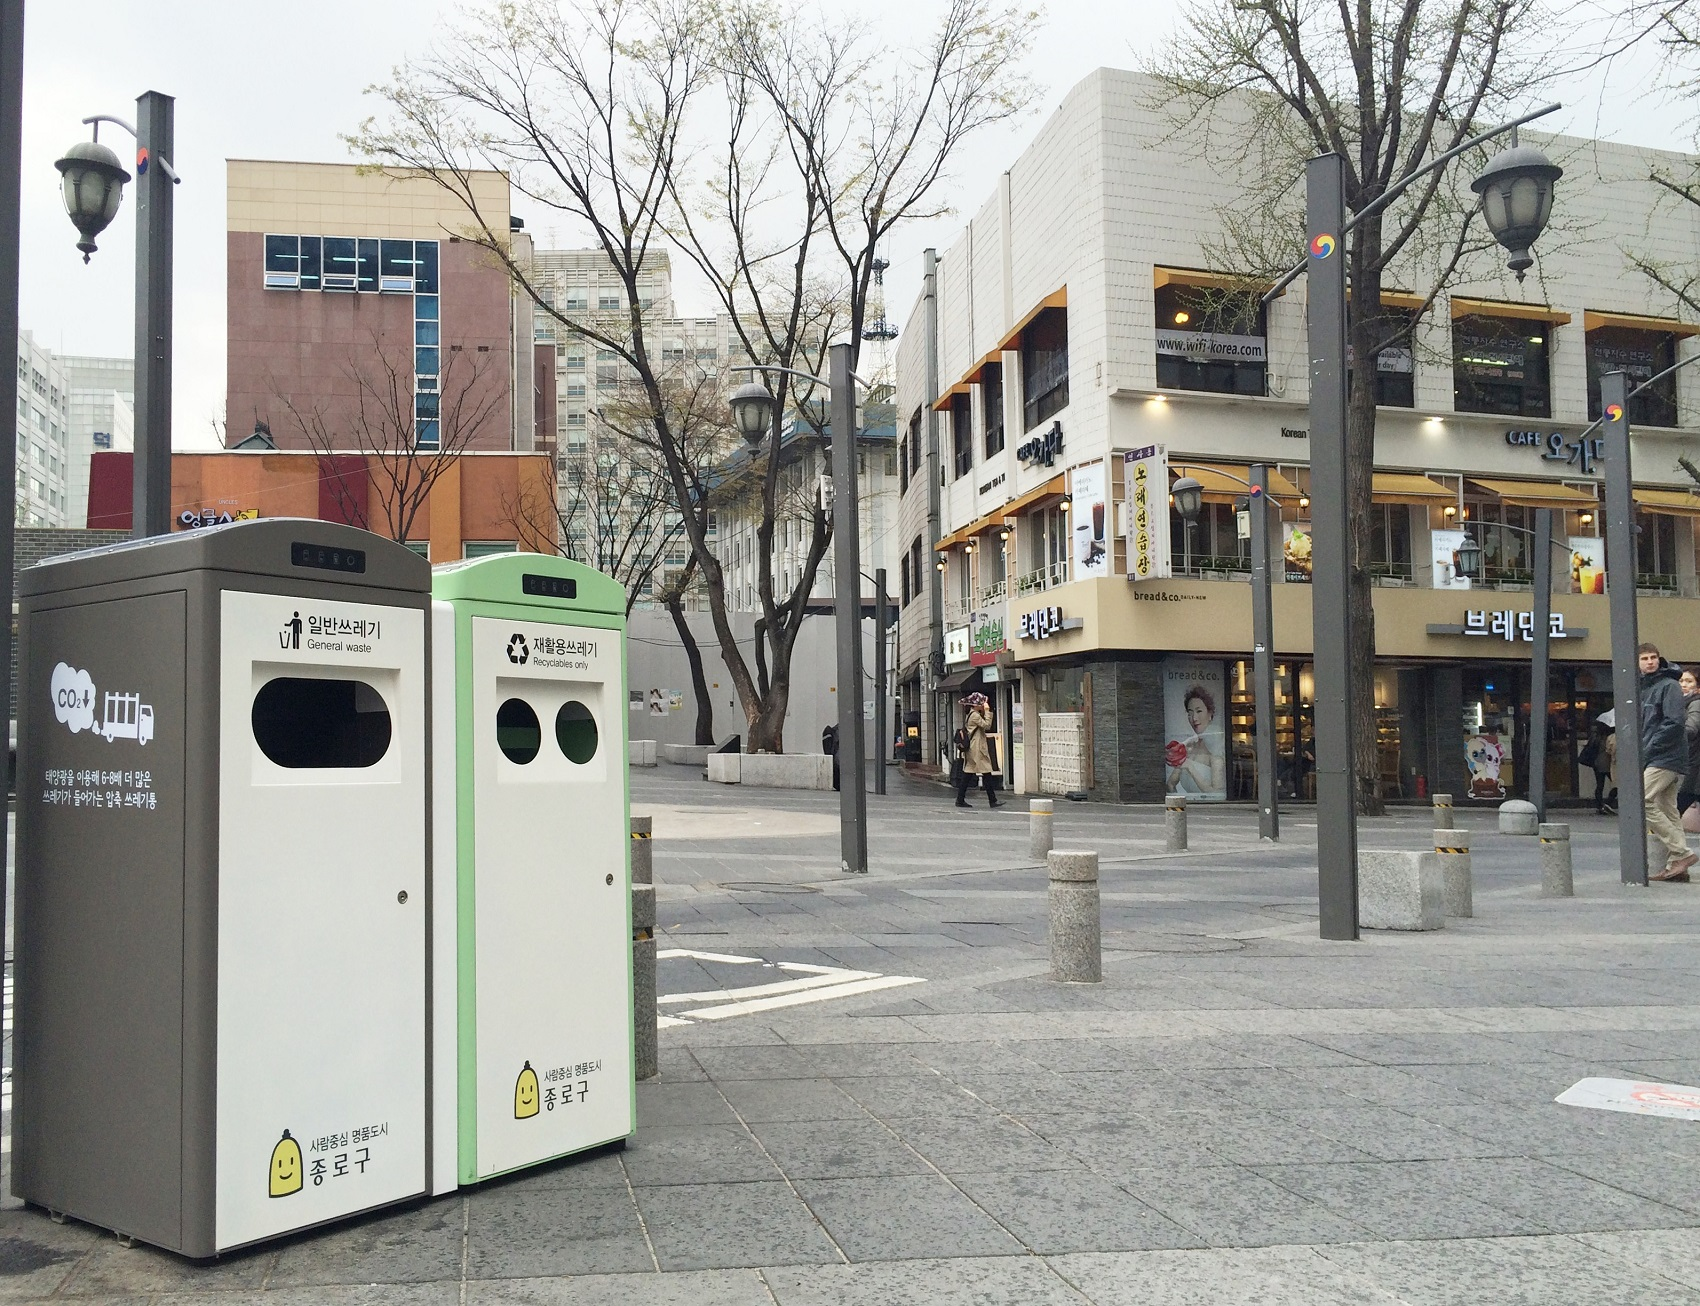 IoT waste bins in Seoul, Korea